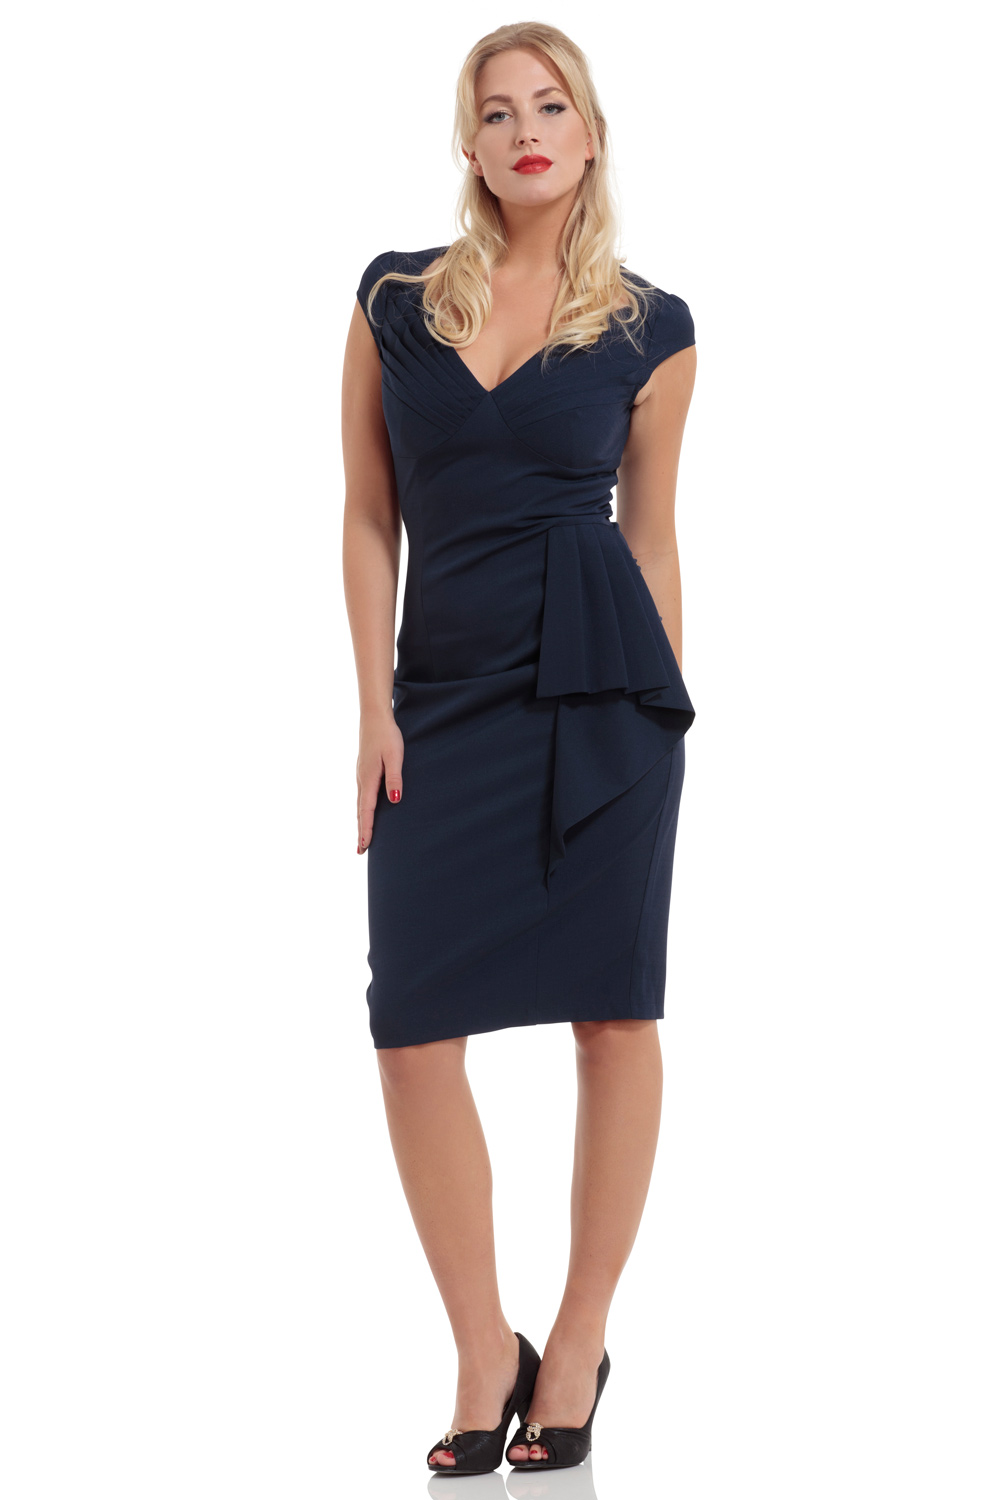 Khloe Ruffle Navy Blue Pencil Dress